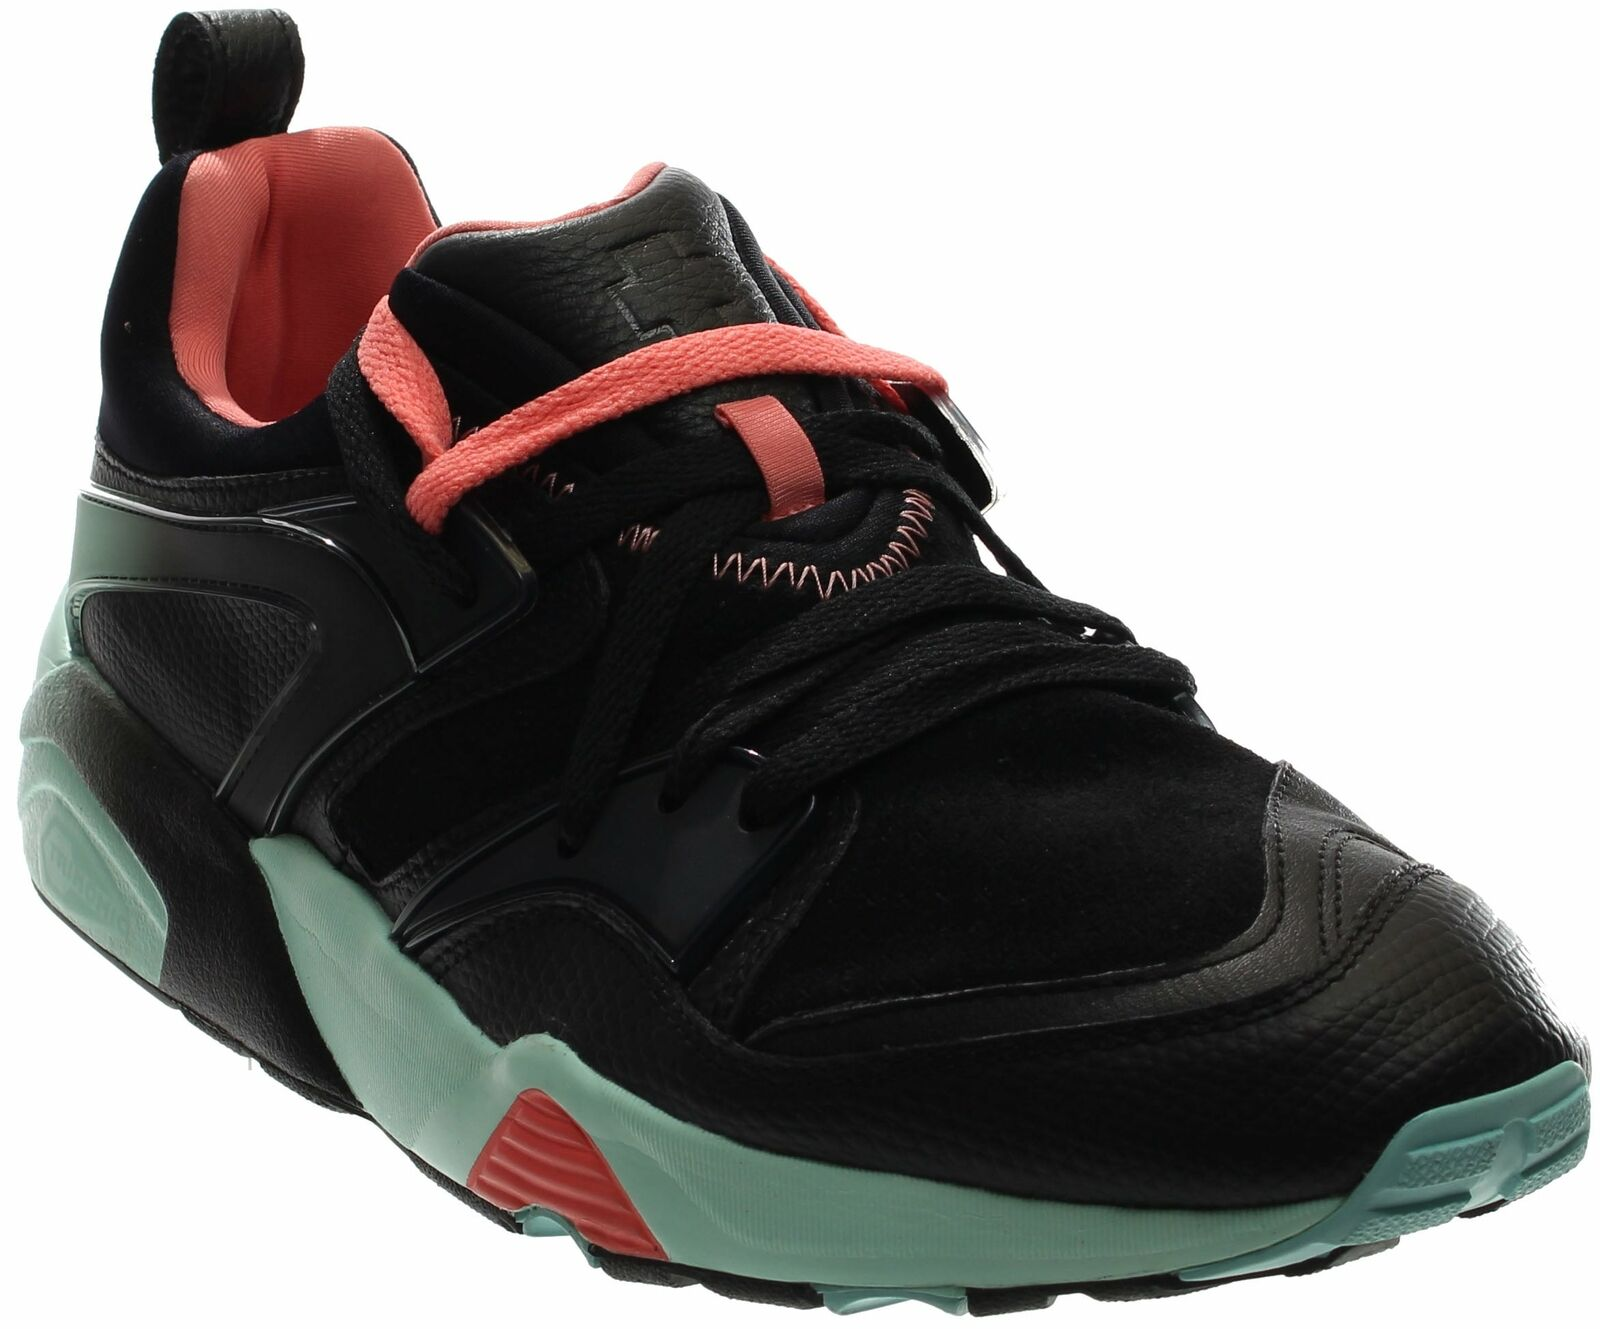 Puma Blaze Of Glory Pink Dolphin  Casual   Sneakers Black - Mens - Size 13 D